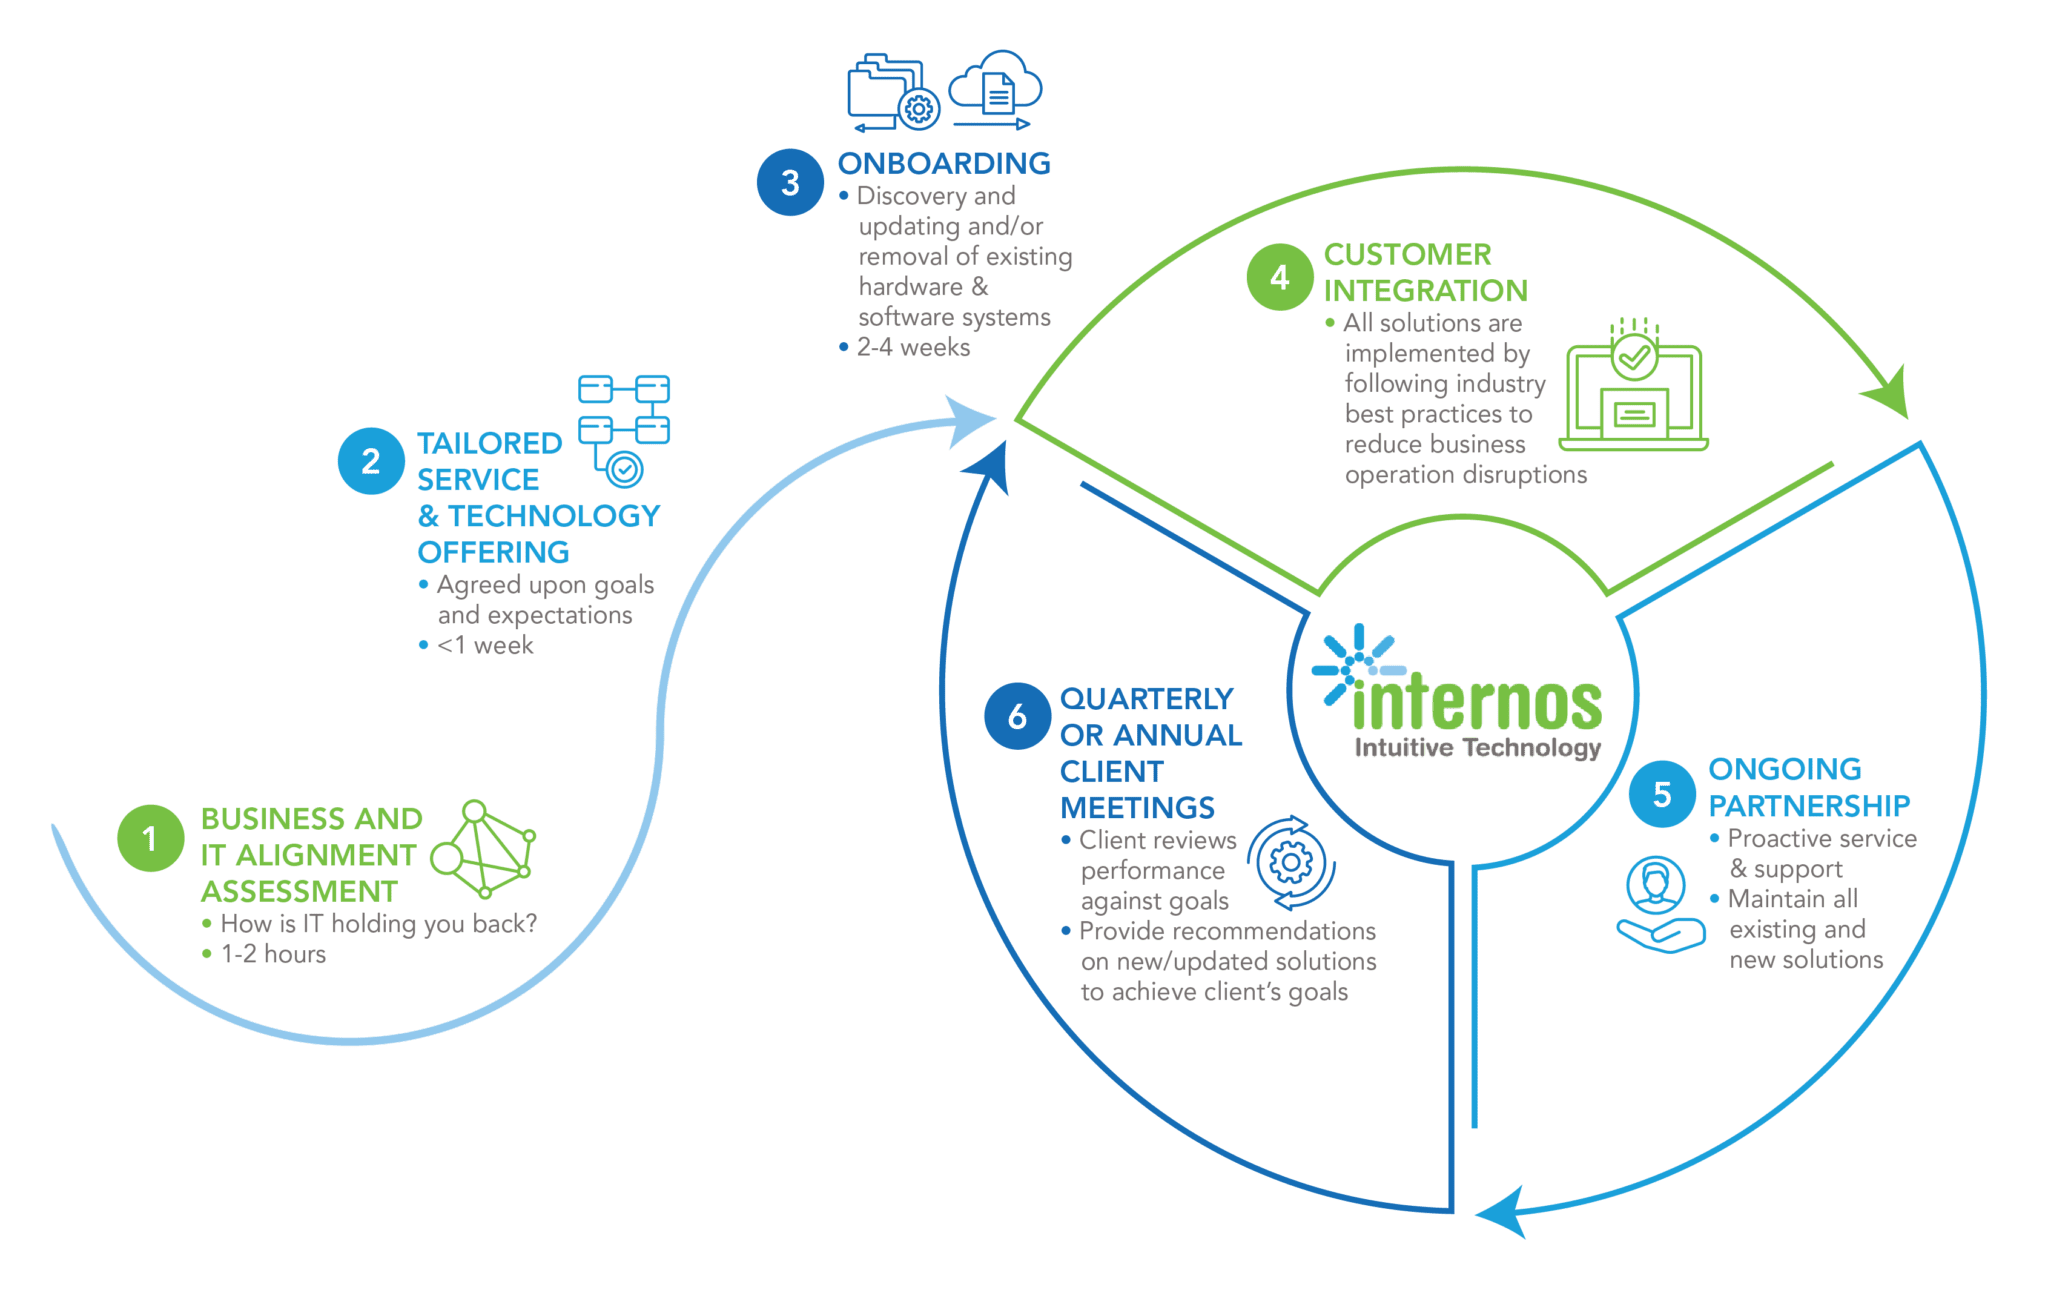 Internos Onboarding Managed IT Process